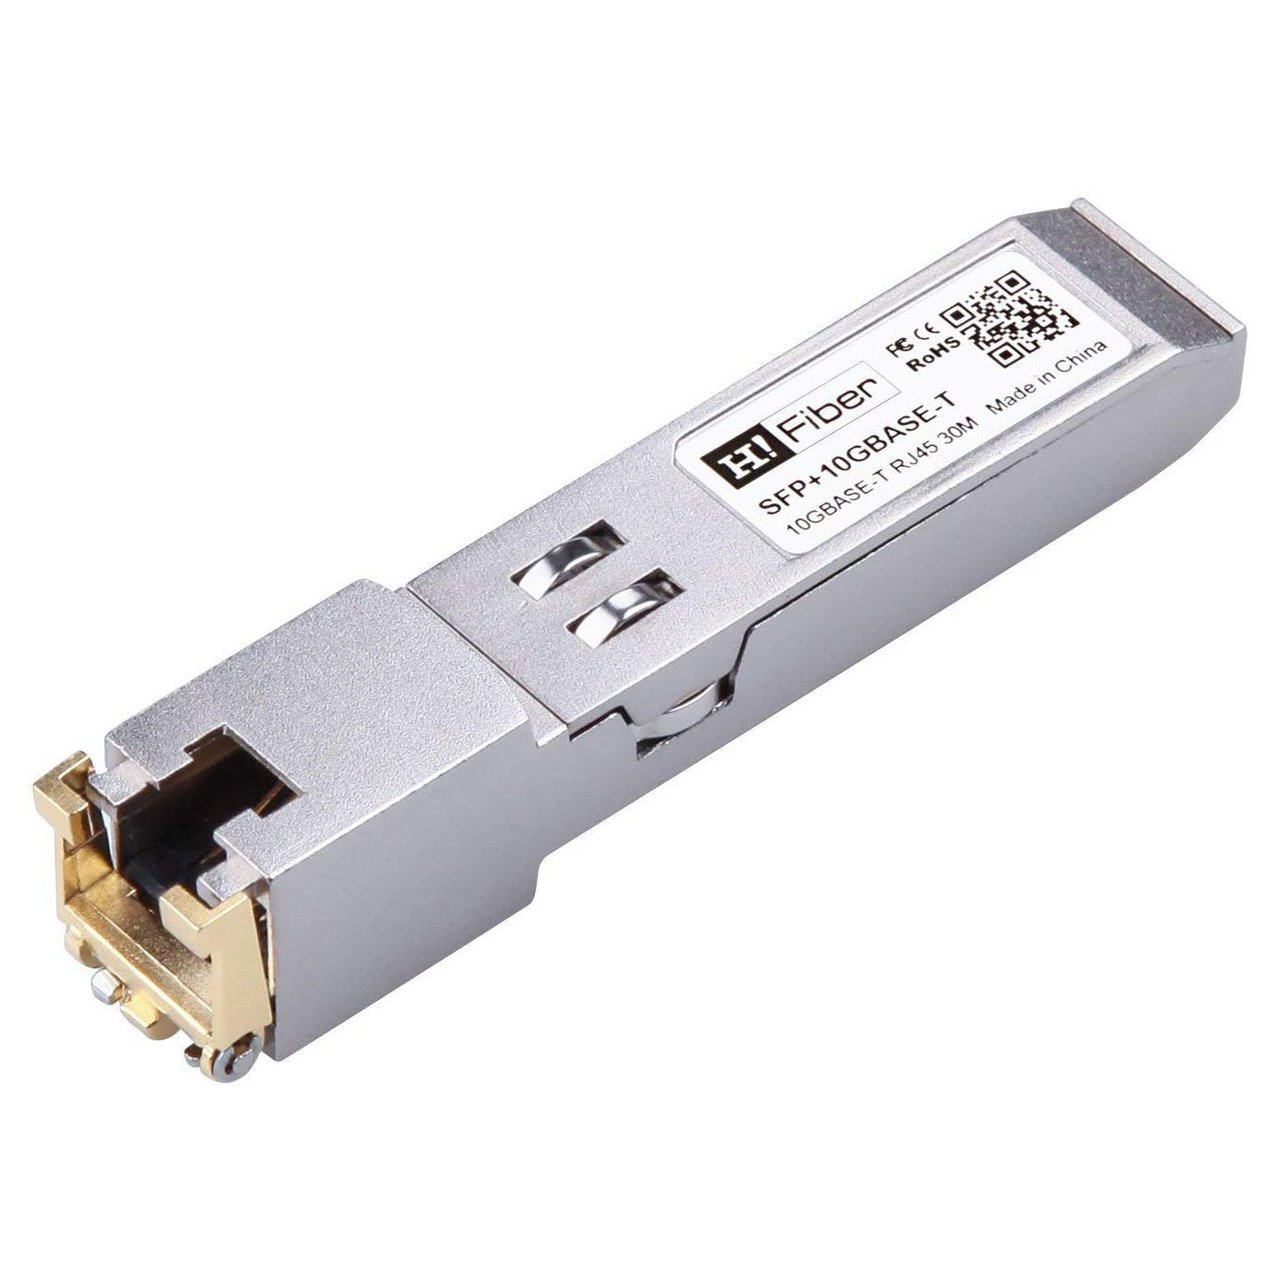 SFP+ Copper Transceiver 10GBase-T, Cat 6a/7, 30M